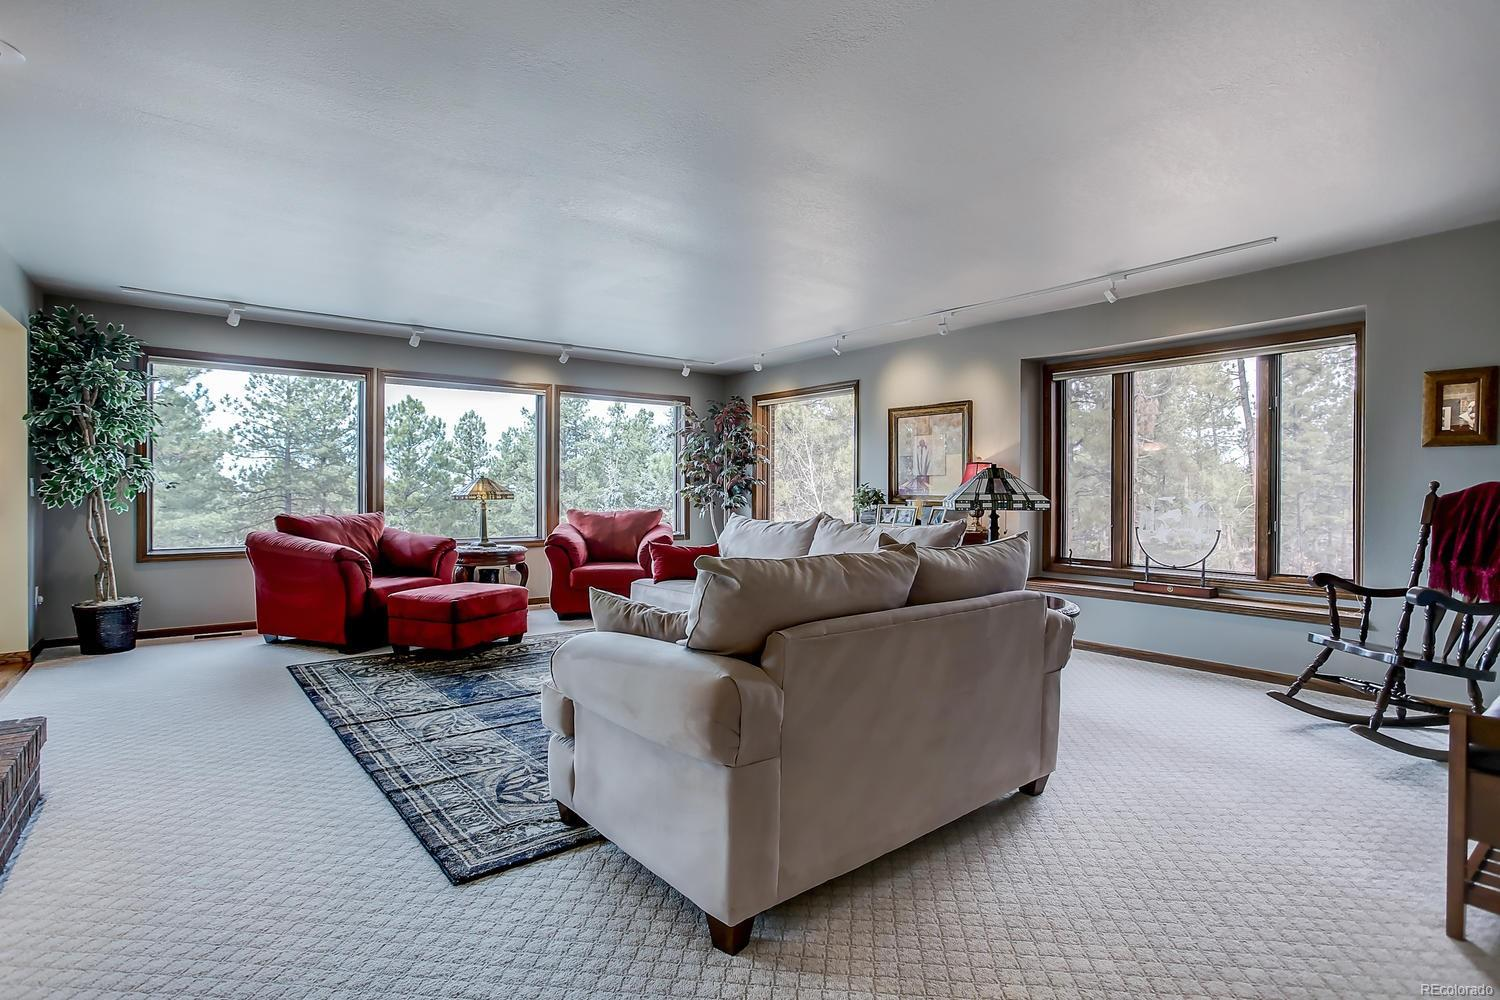 FAMILY ROOM / DEN WITH NEW GAS FIREPLACE